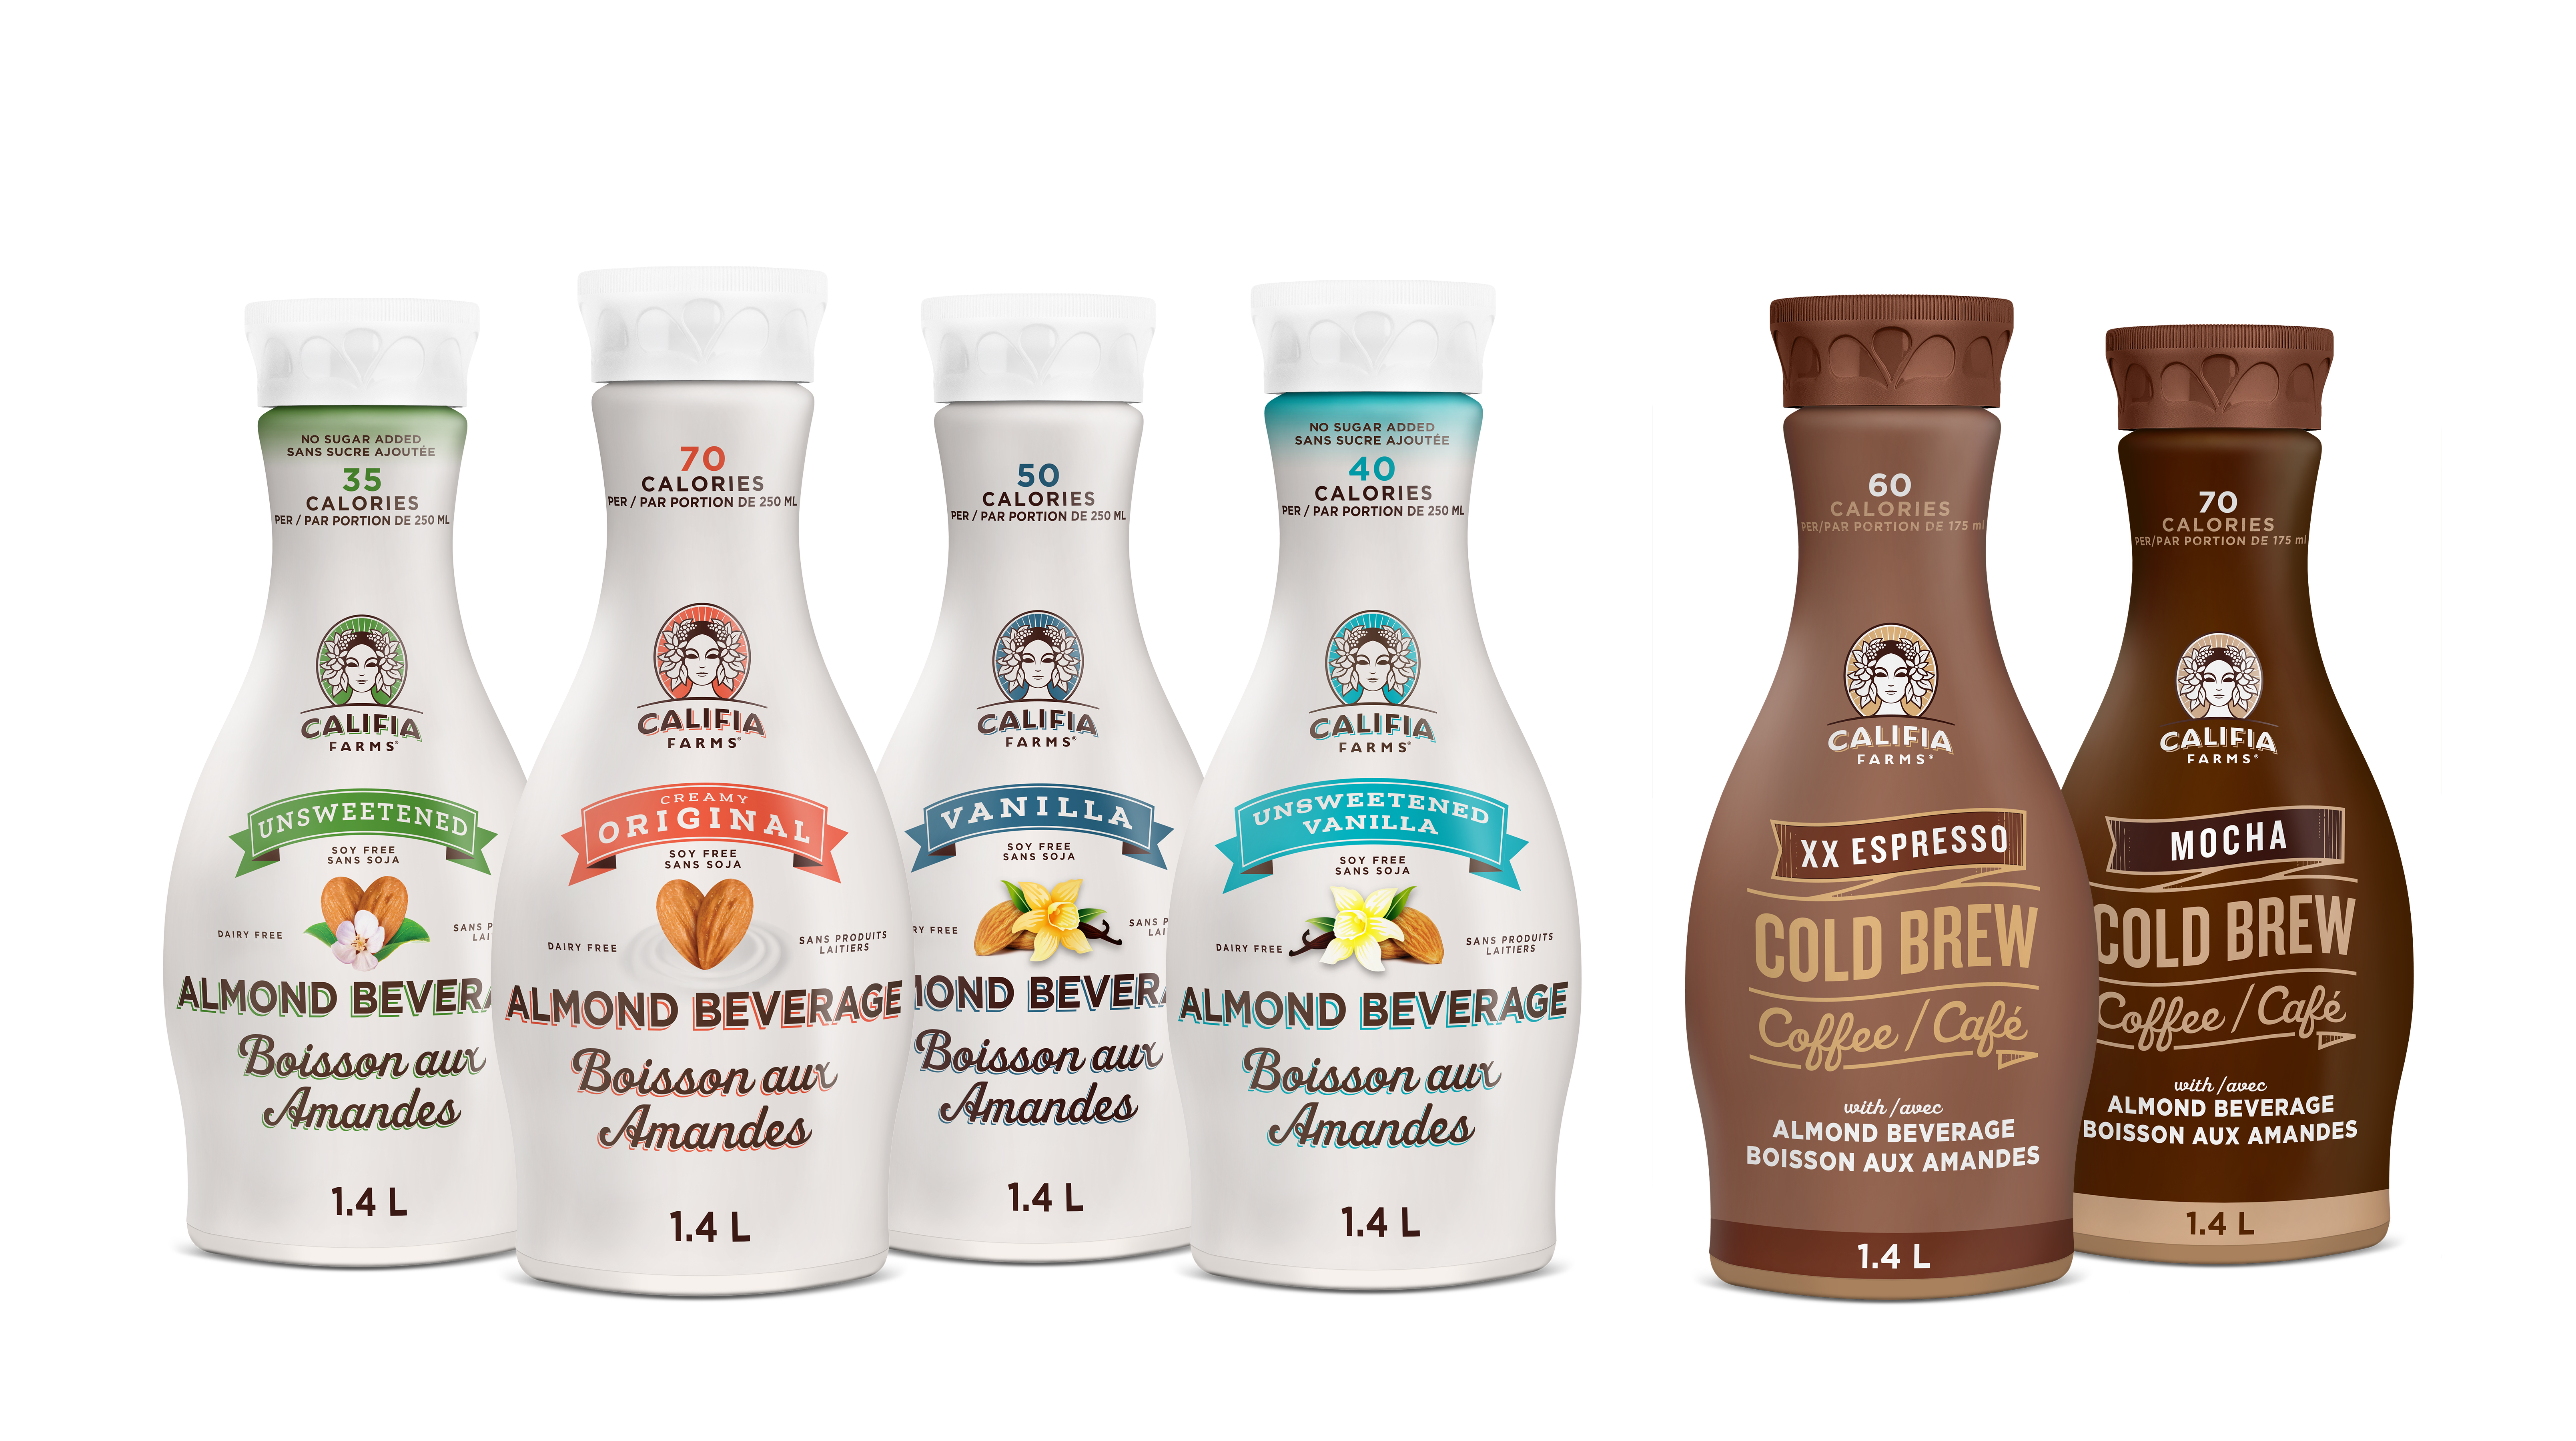 Califia Farms Brings Top Selling Almond Beverages And Cold Brew Coffees To Canadian Market